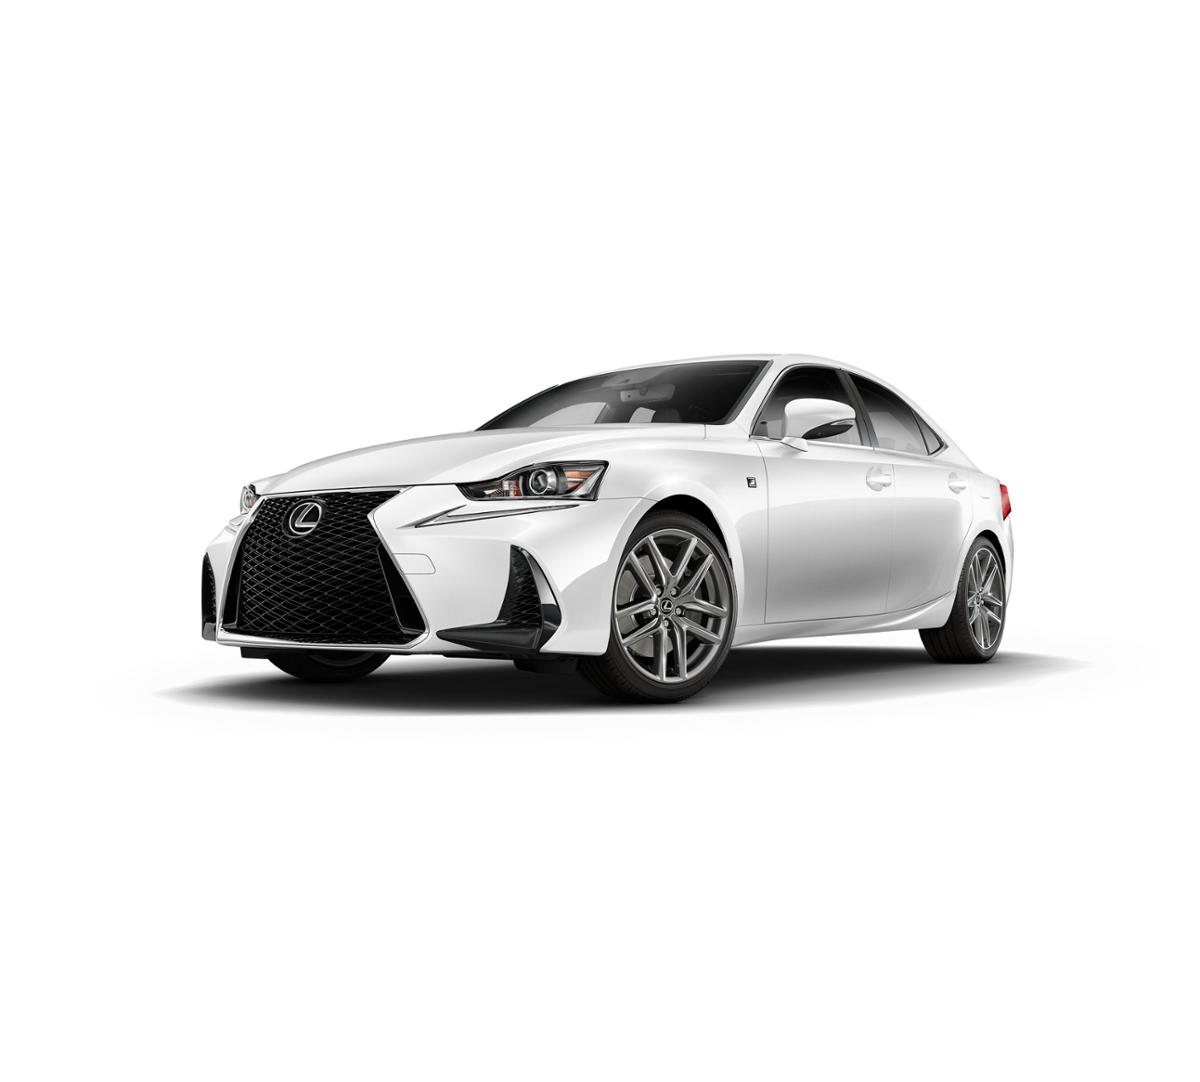 2018 Lexus IS 300 Vehicle Photo in Santa Monica, CA 90404